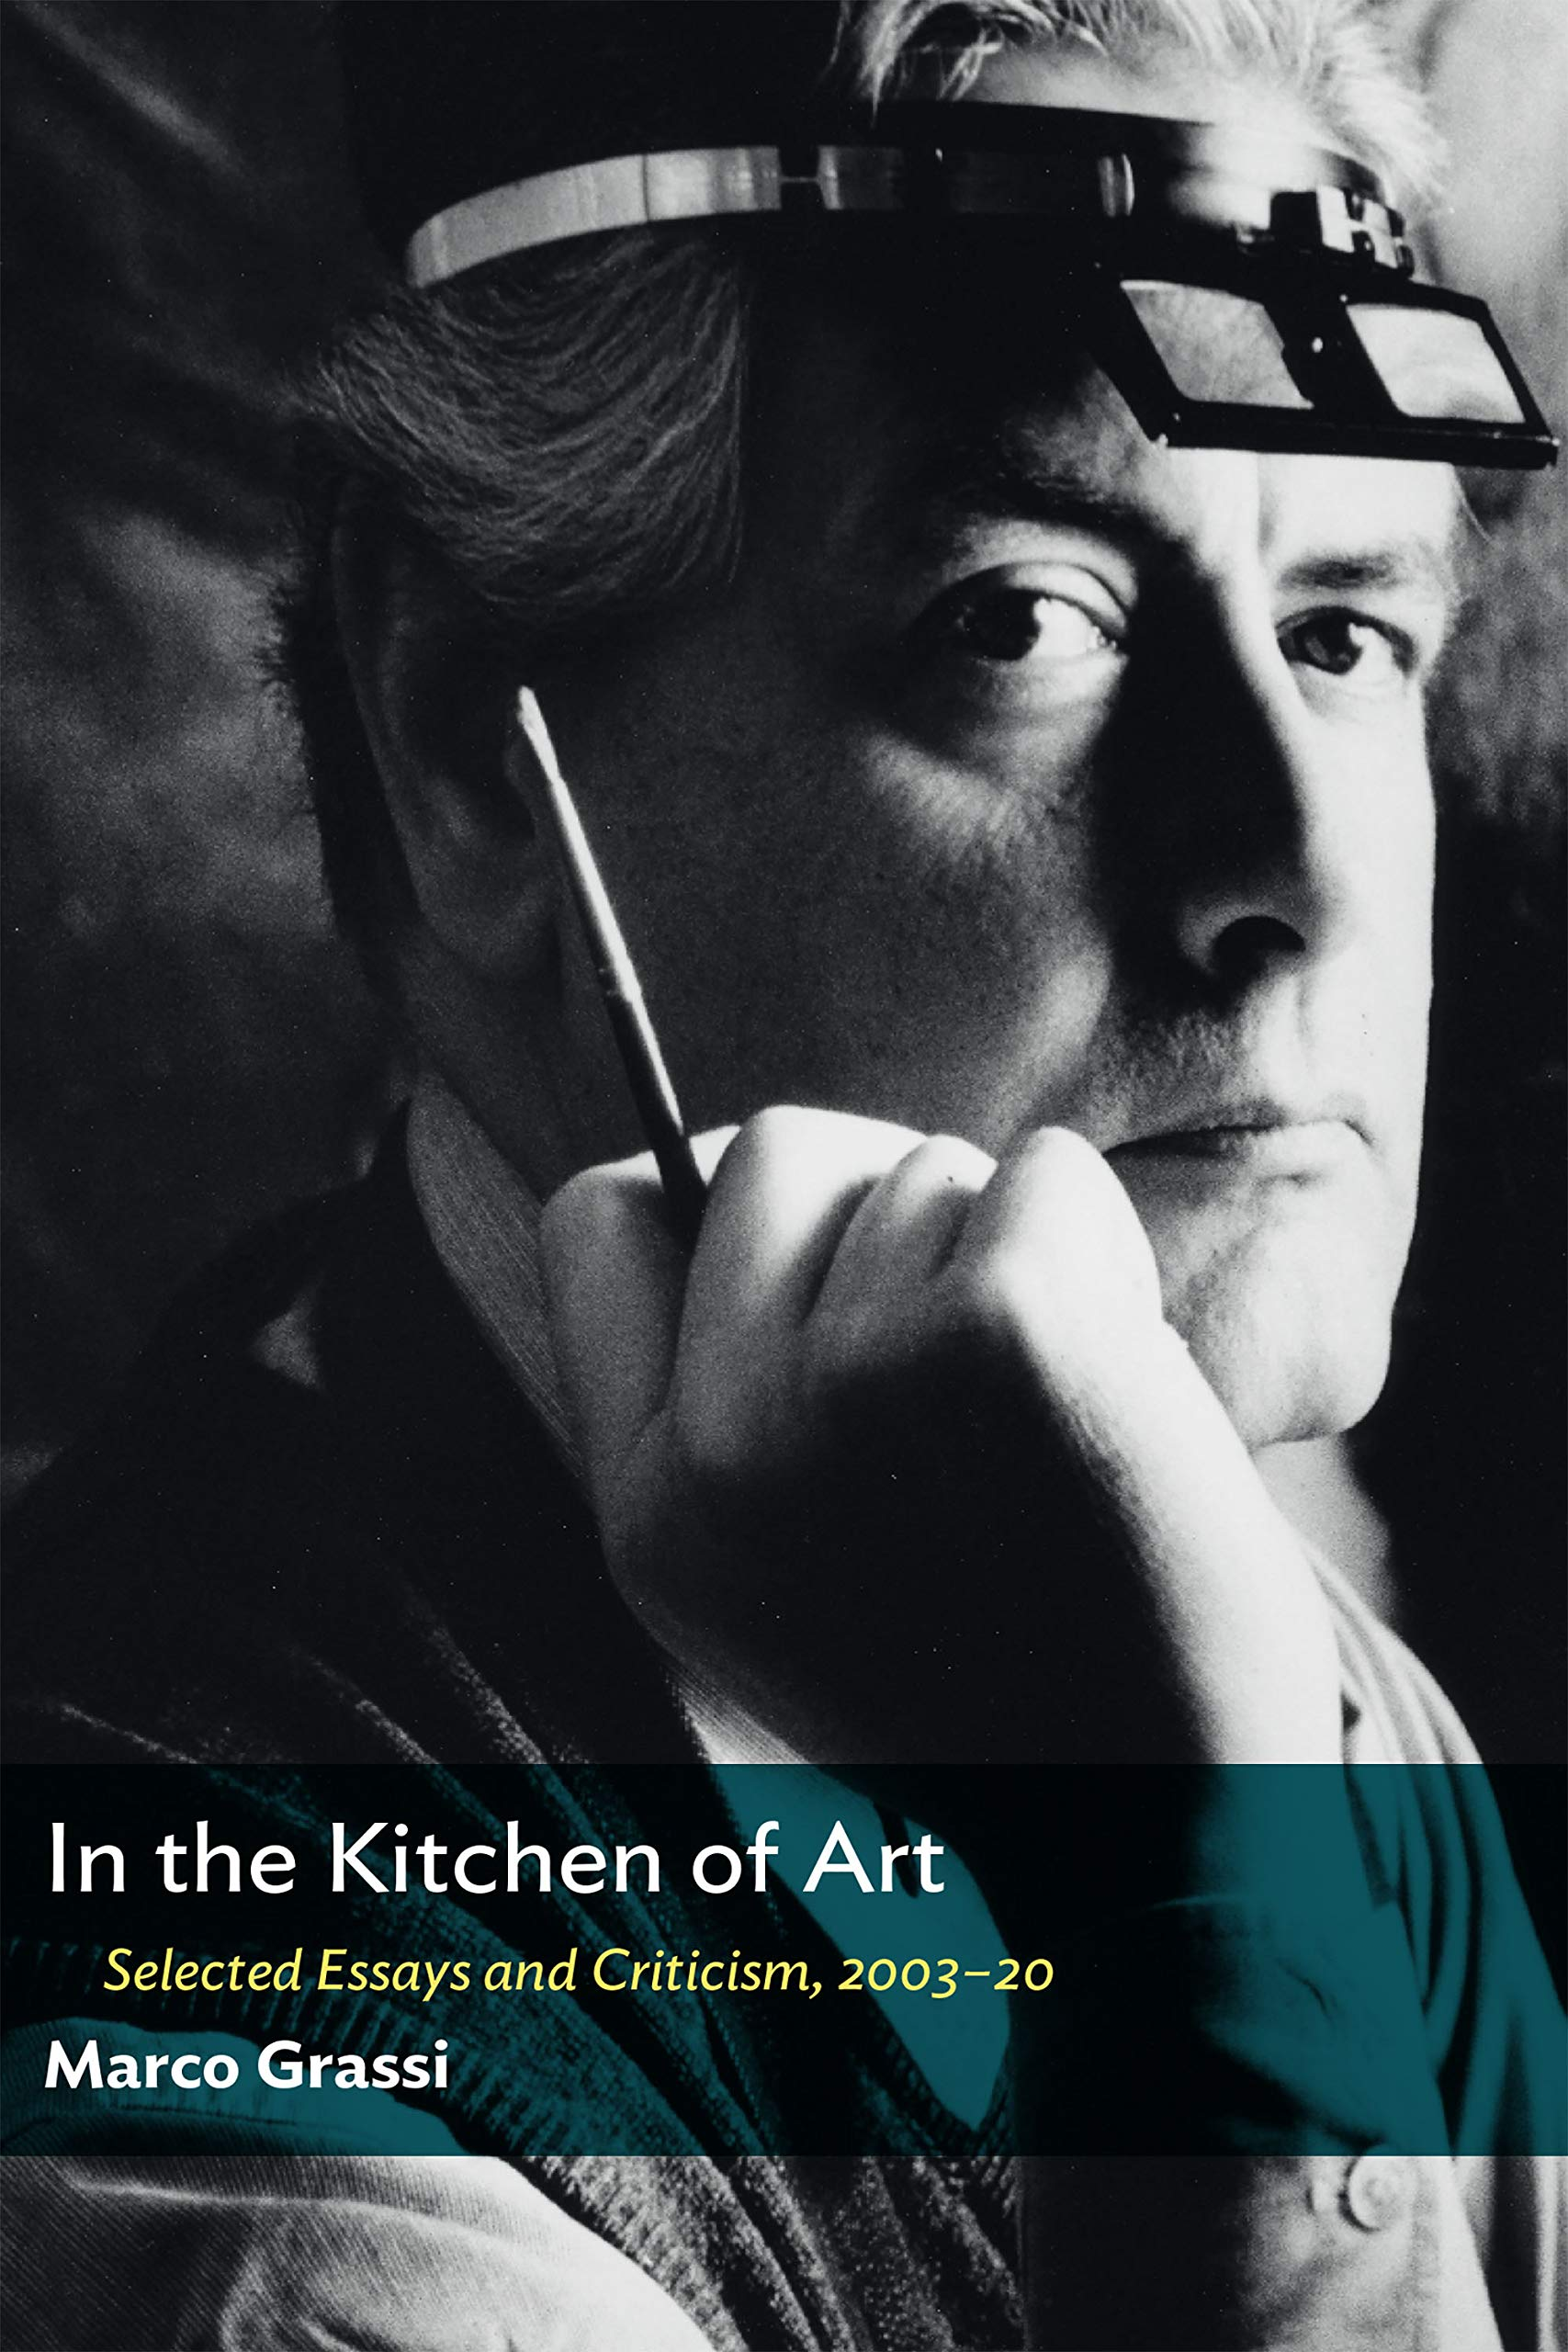 In the Kitchen of Art: Selected Essays and Criticism, 2003-20: Grassi,  Marco: 9781641771955: Amazon.com: Books